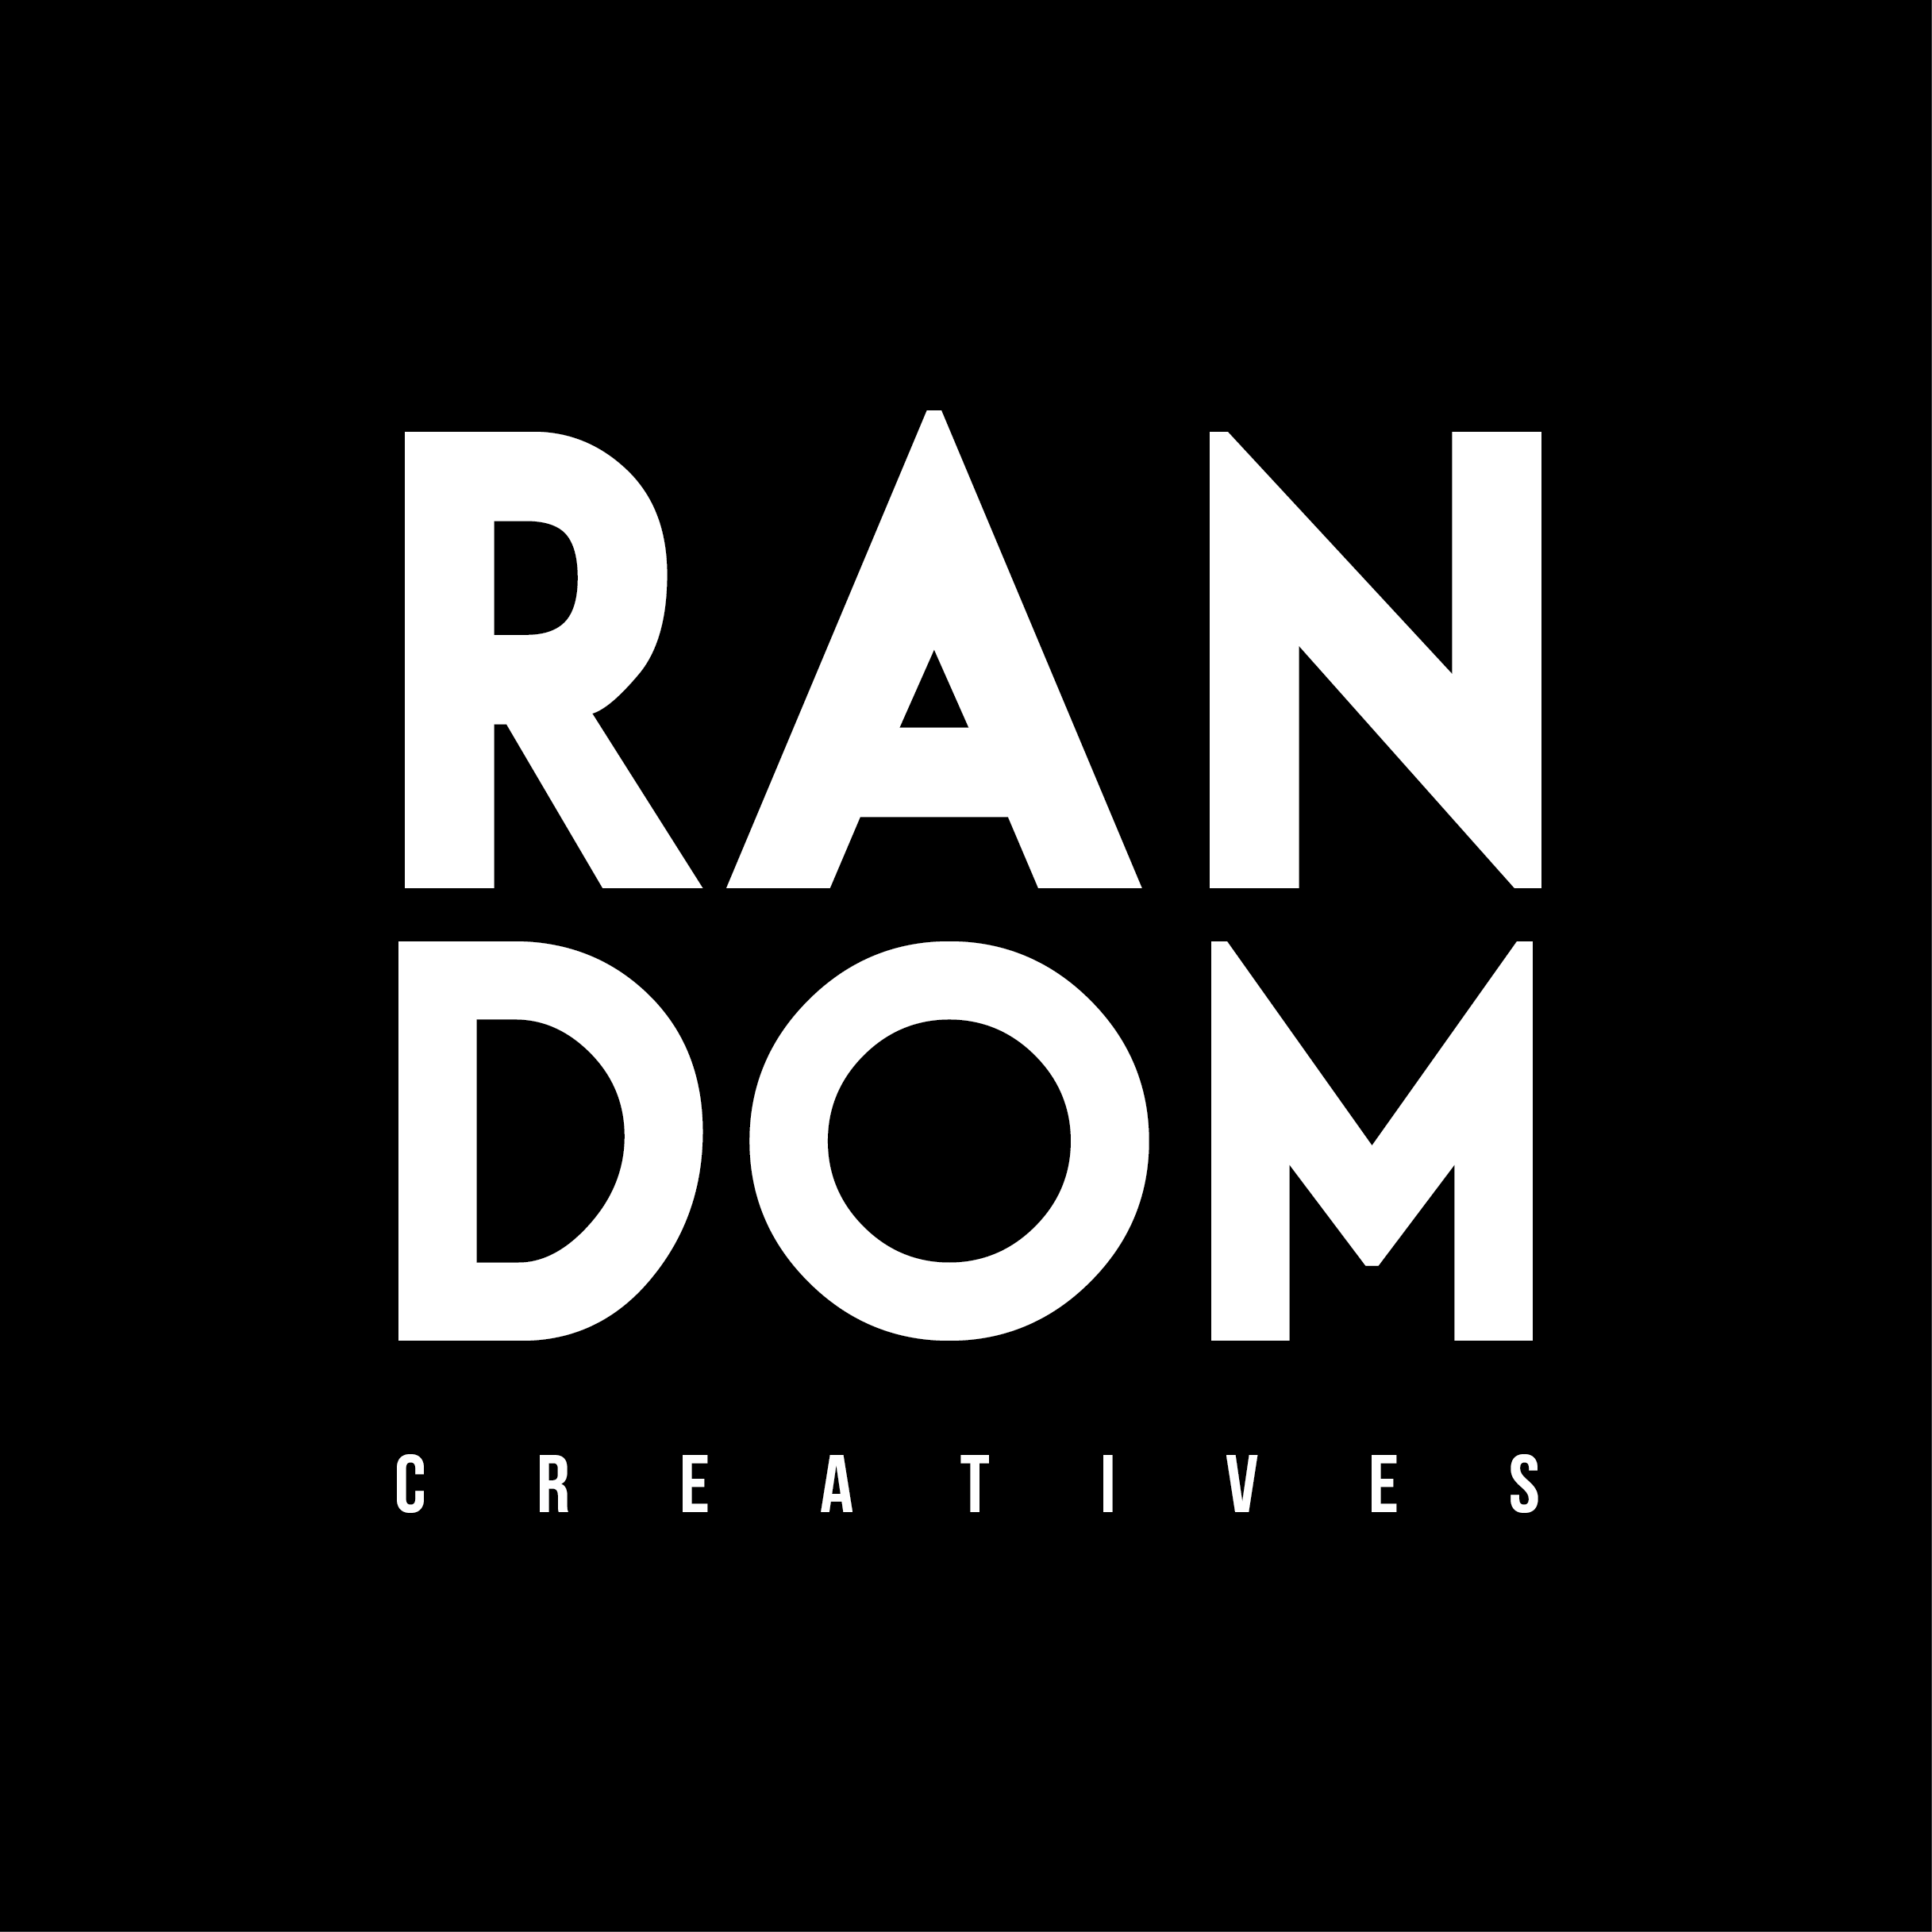 Random Creatives logo